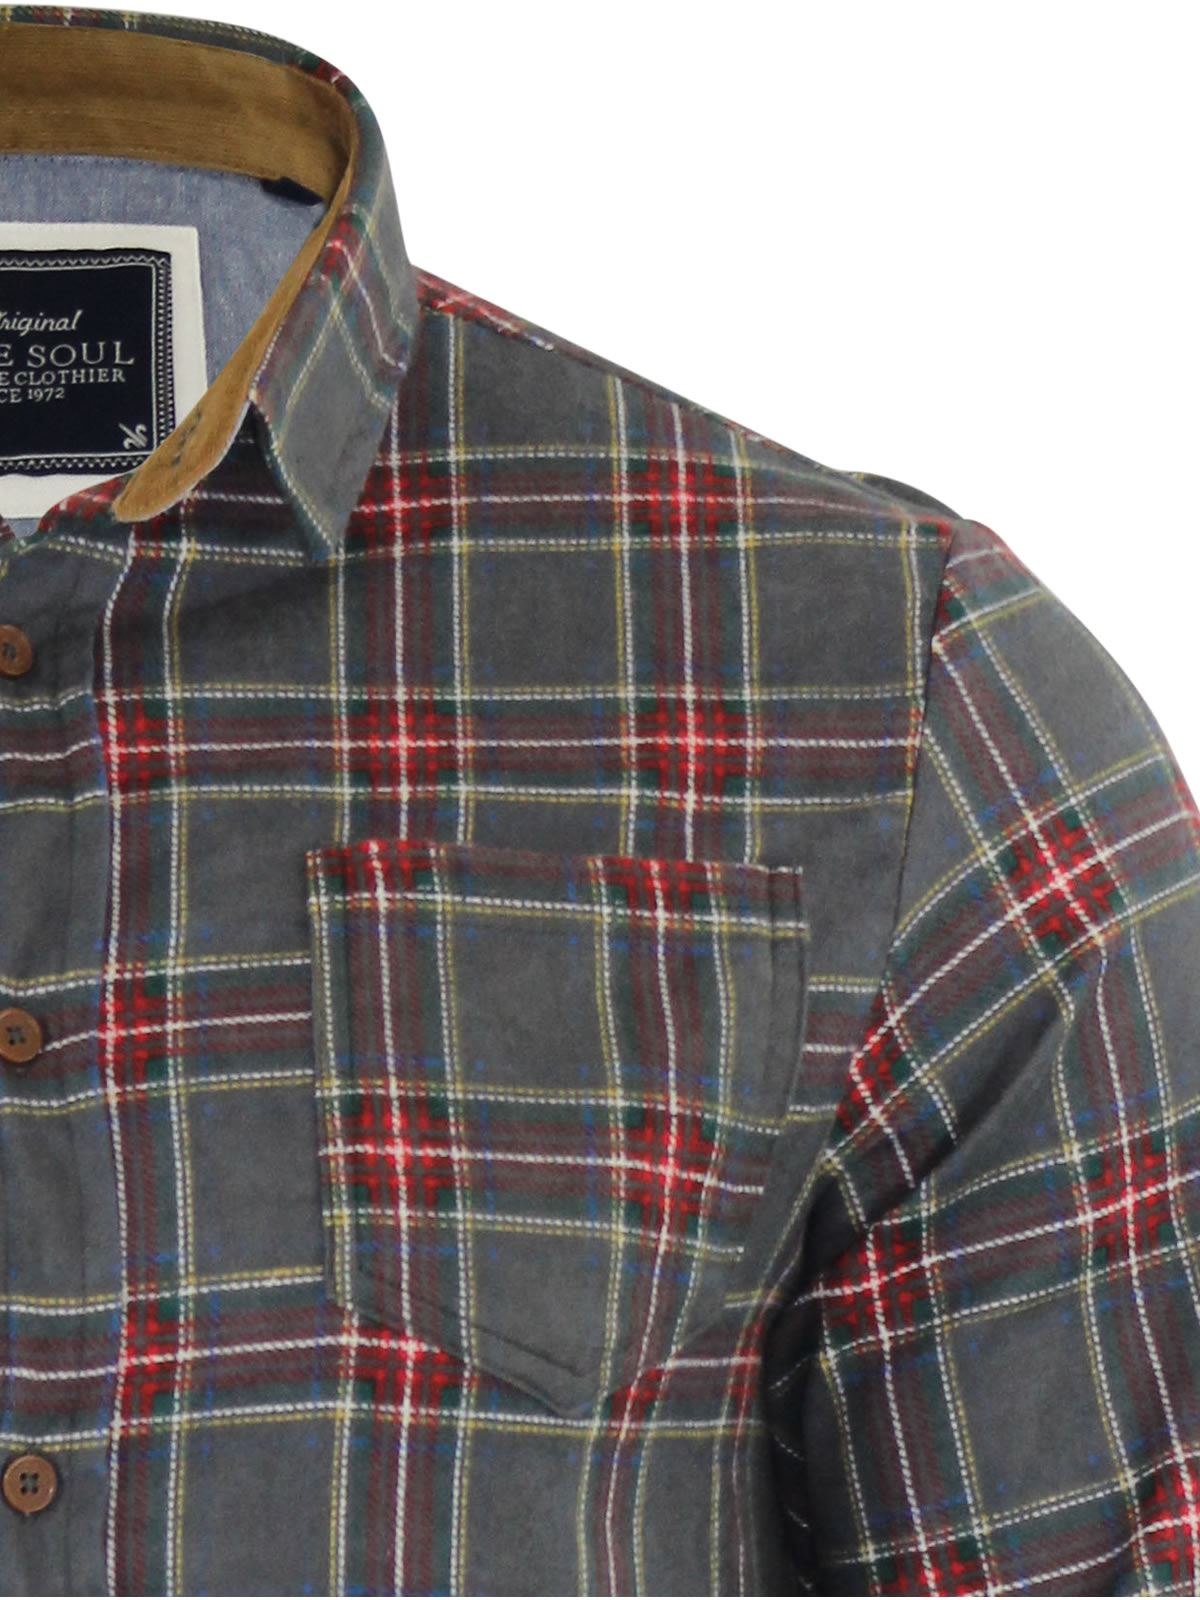 Mens-Check-Shirt-Brave-Soul-Flannel-Brushed-Cotton-Long-Sleeve-Casual-Top thumbnail 13